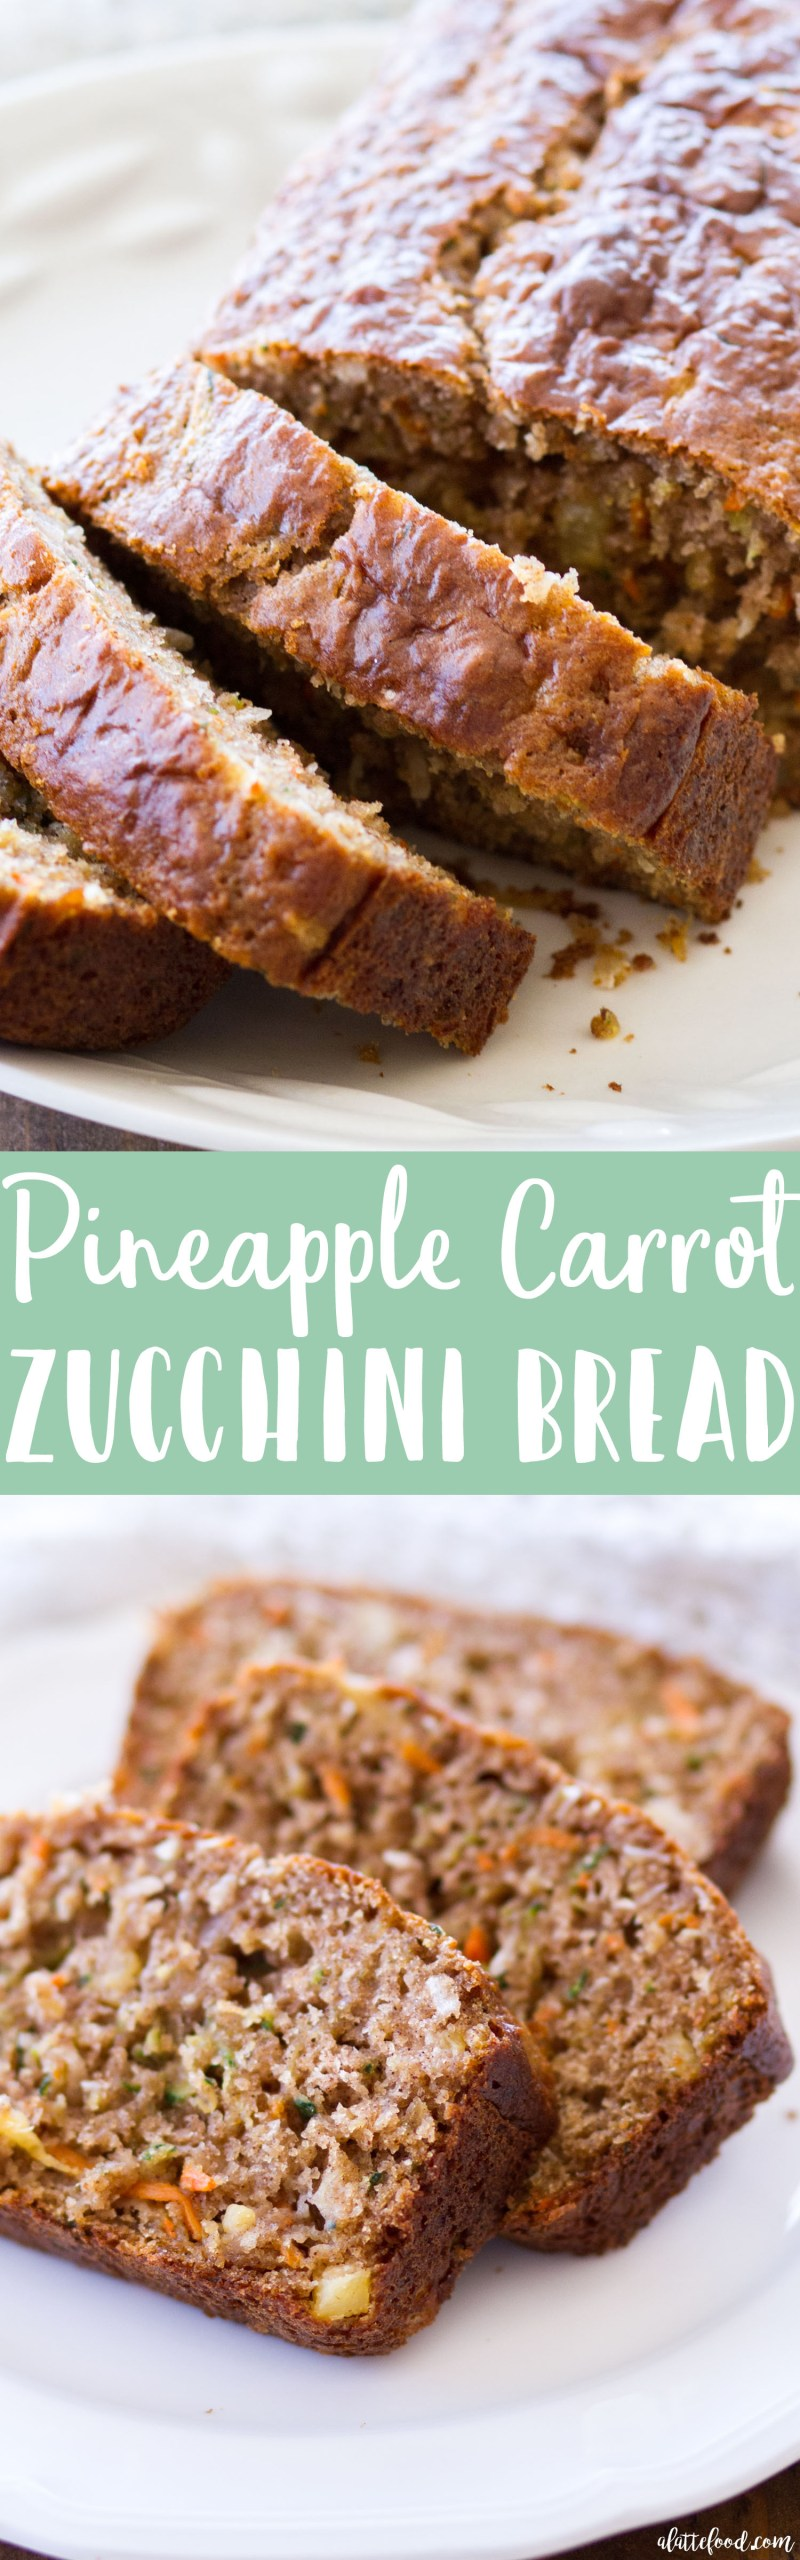 This homemade zucchini bread recipe is filled with shredded carrots, sweet pineapple, and coconut! Pineapple Carrot Zucchini Bread is spiced with ginger and cinnamon, and the perfect quick bread for breakfast, brunch, or an after school snack! Plus, a video below! homemade zucchini bread, what to do with zucchini